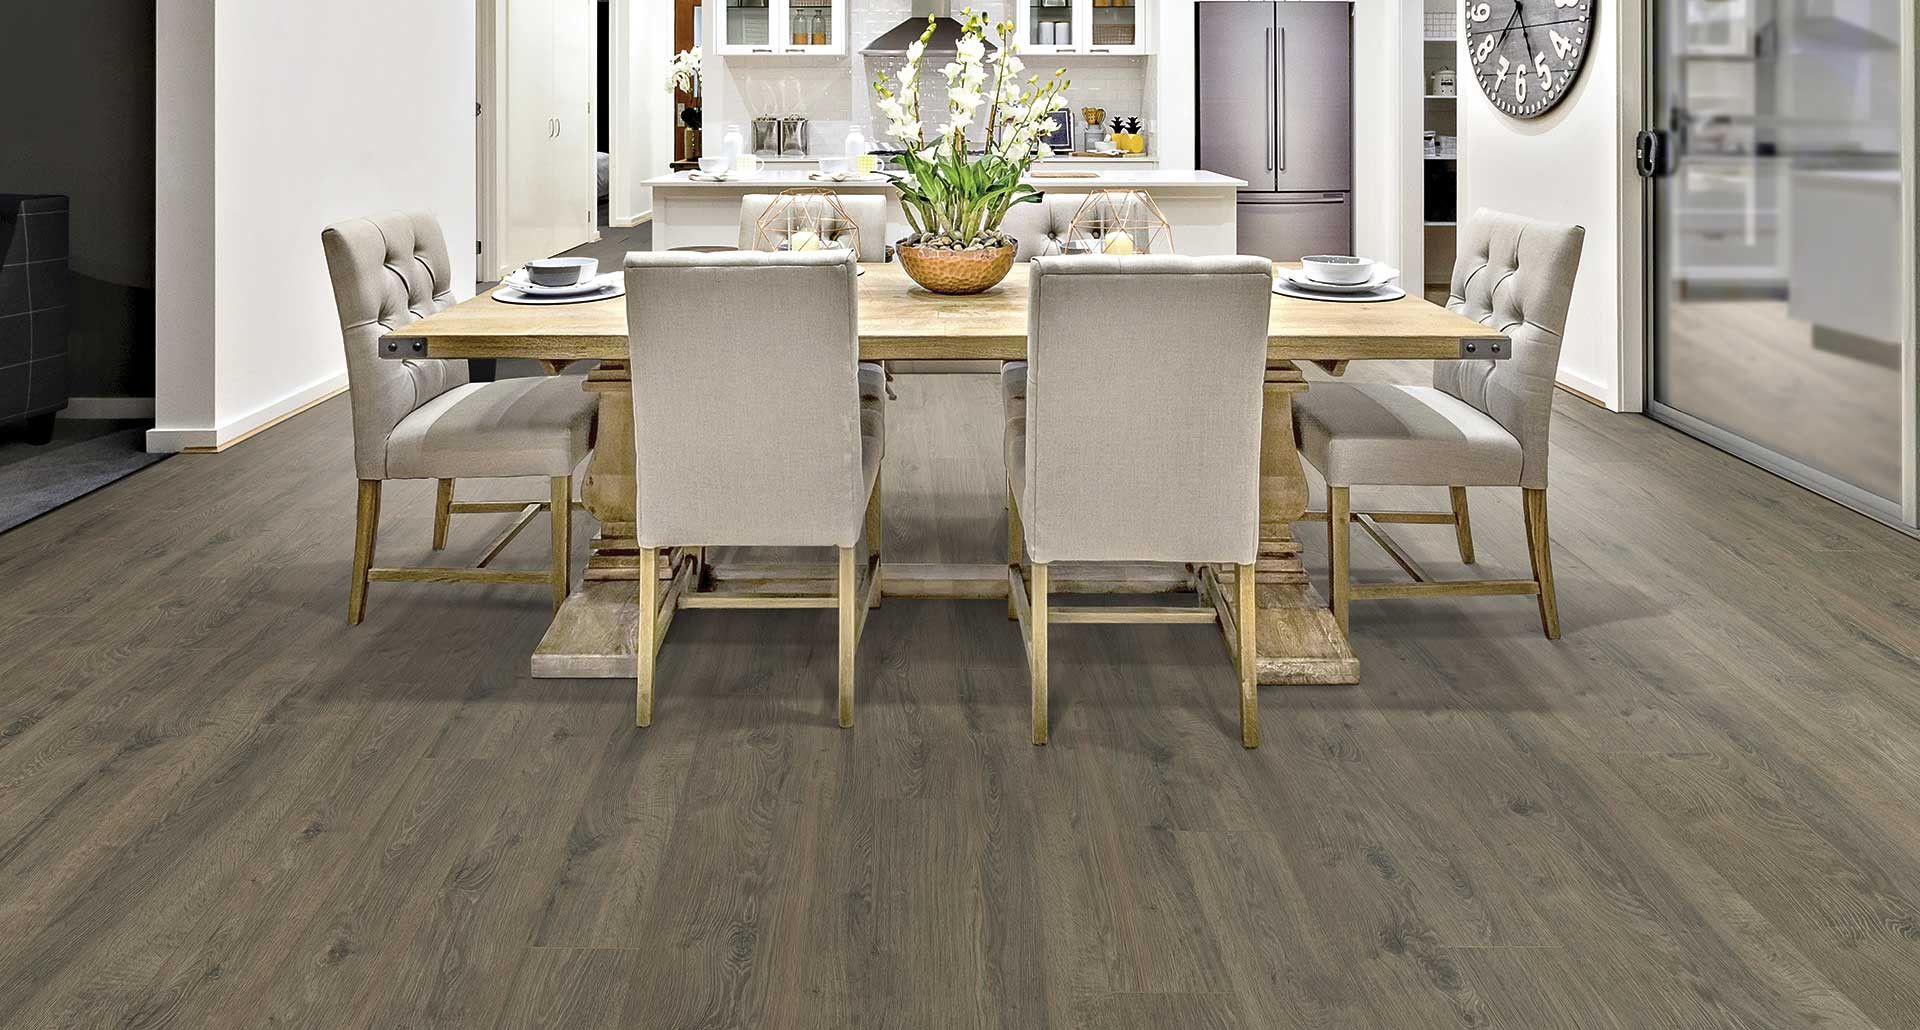 Lifeproof-Vinyl-Flooring-Sterling-Oak | Lifeproof vinyl ...